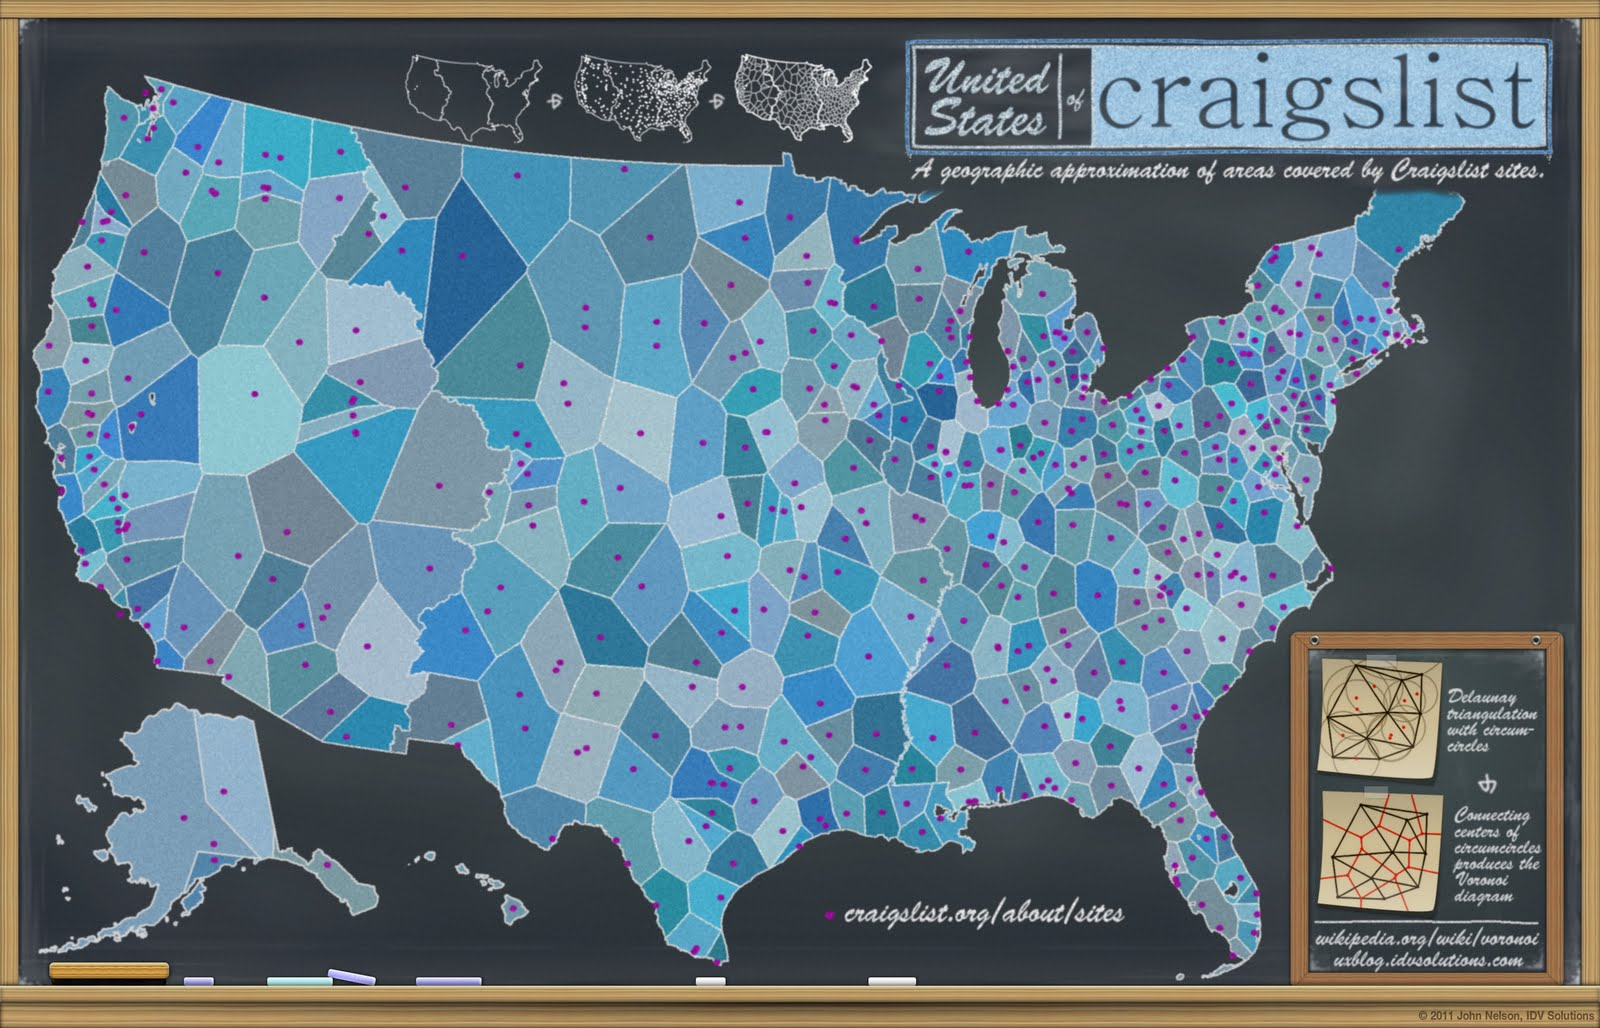 Craigslist map of US directories.